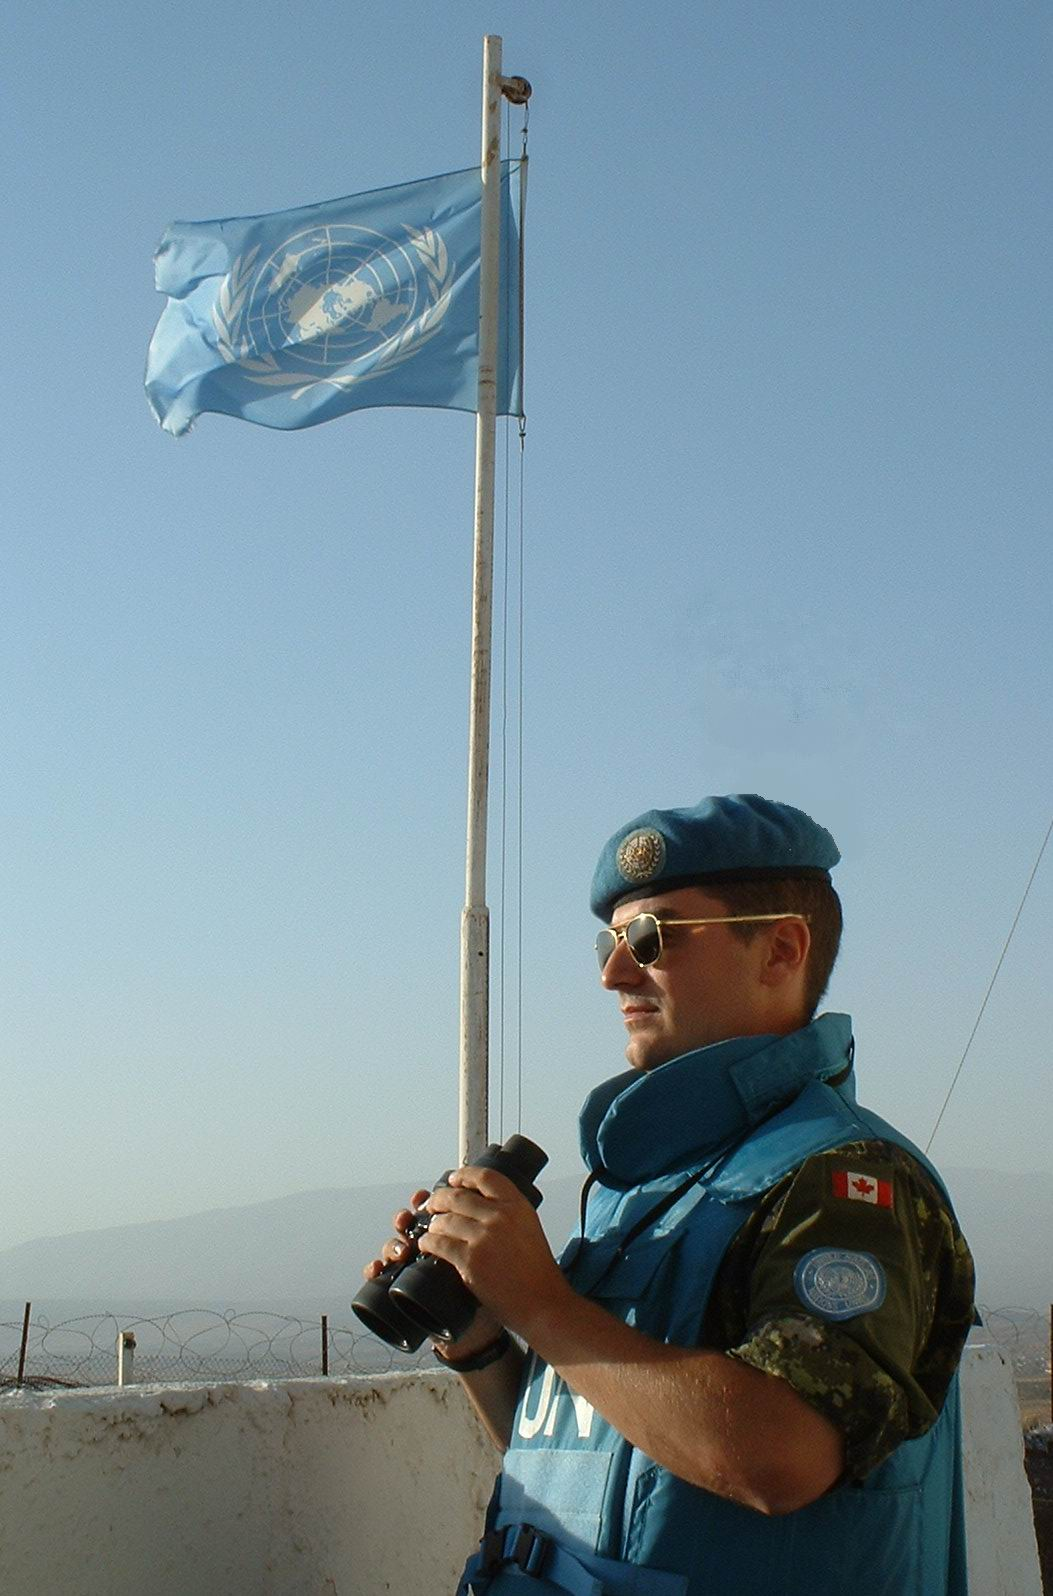 Lieutenant(N) Bennett R. Coles observing in the Golan Heights